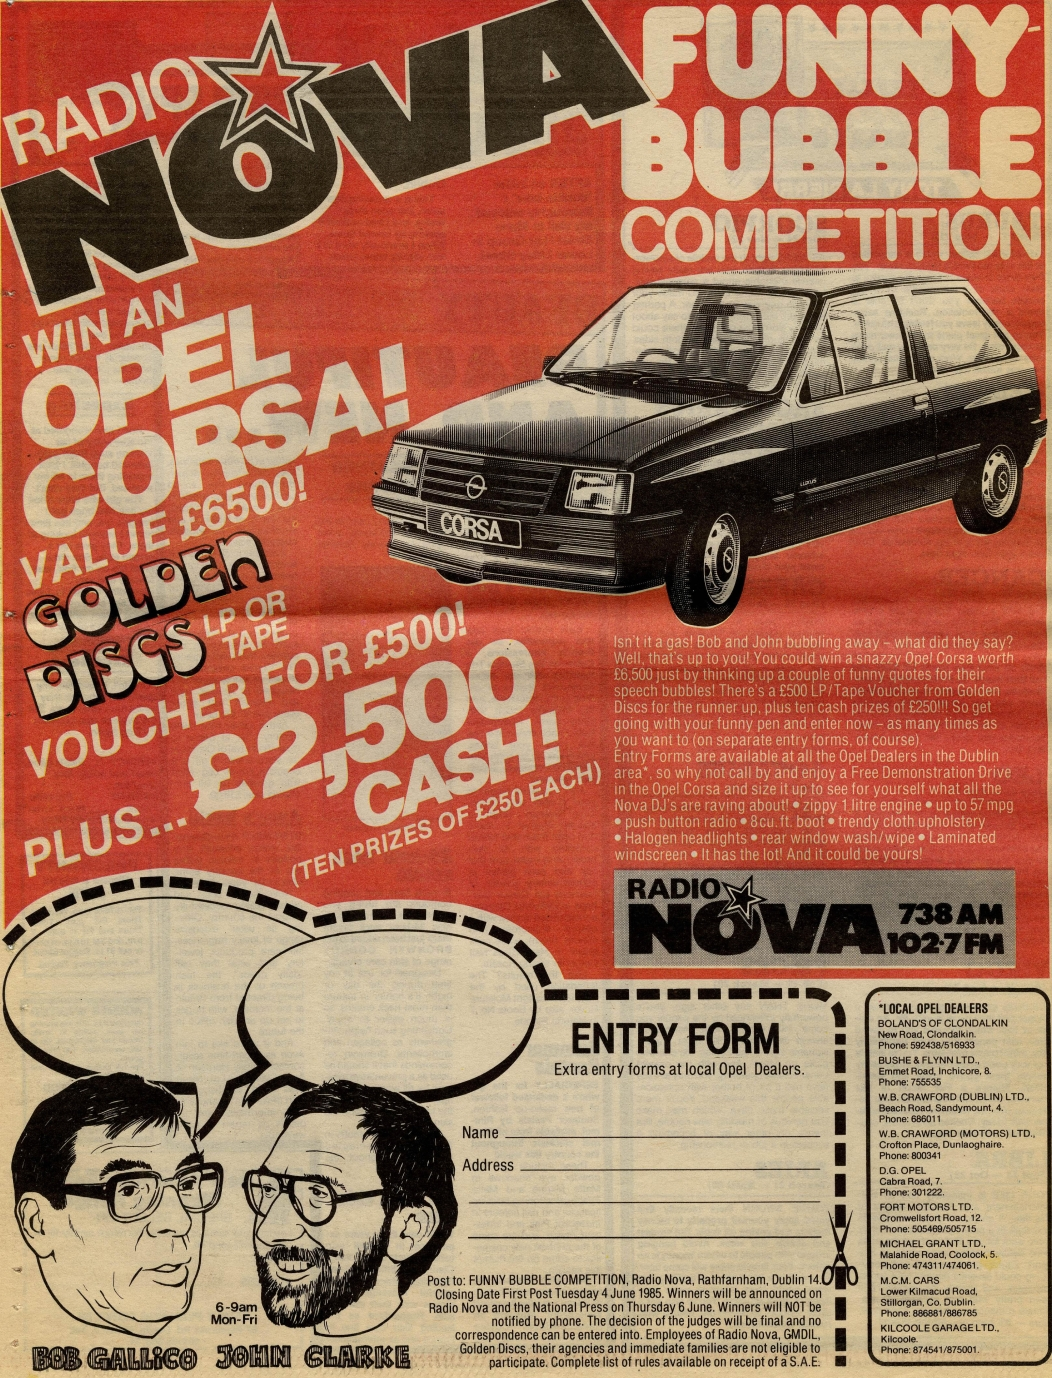 Radio Nova's Funny Bubble Competition